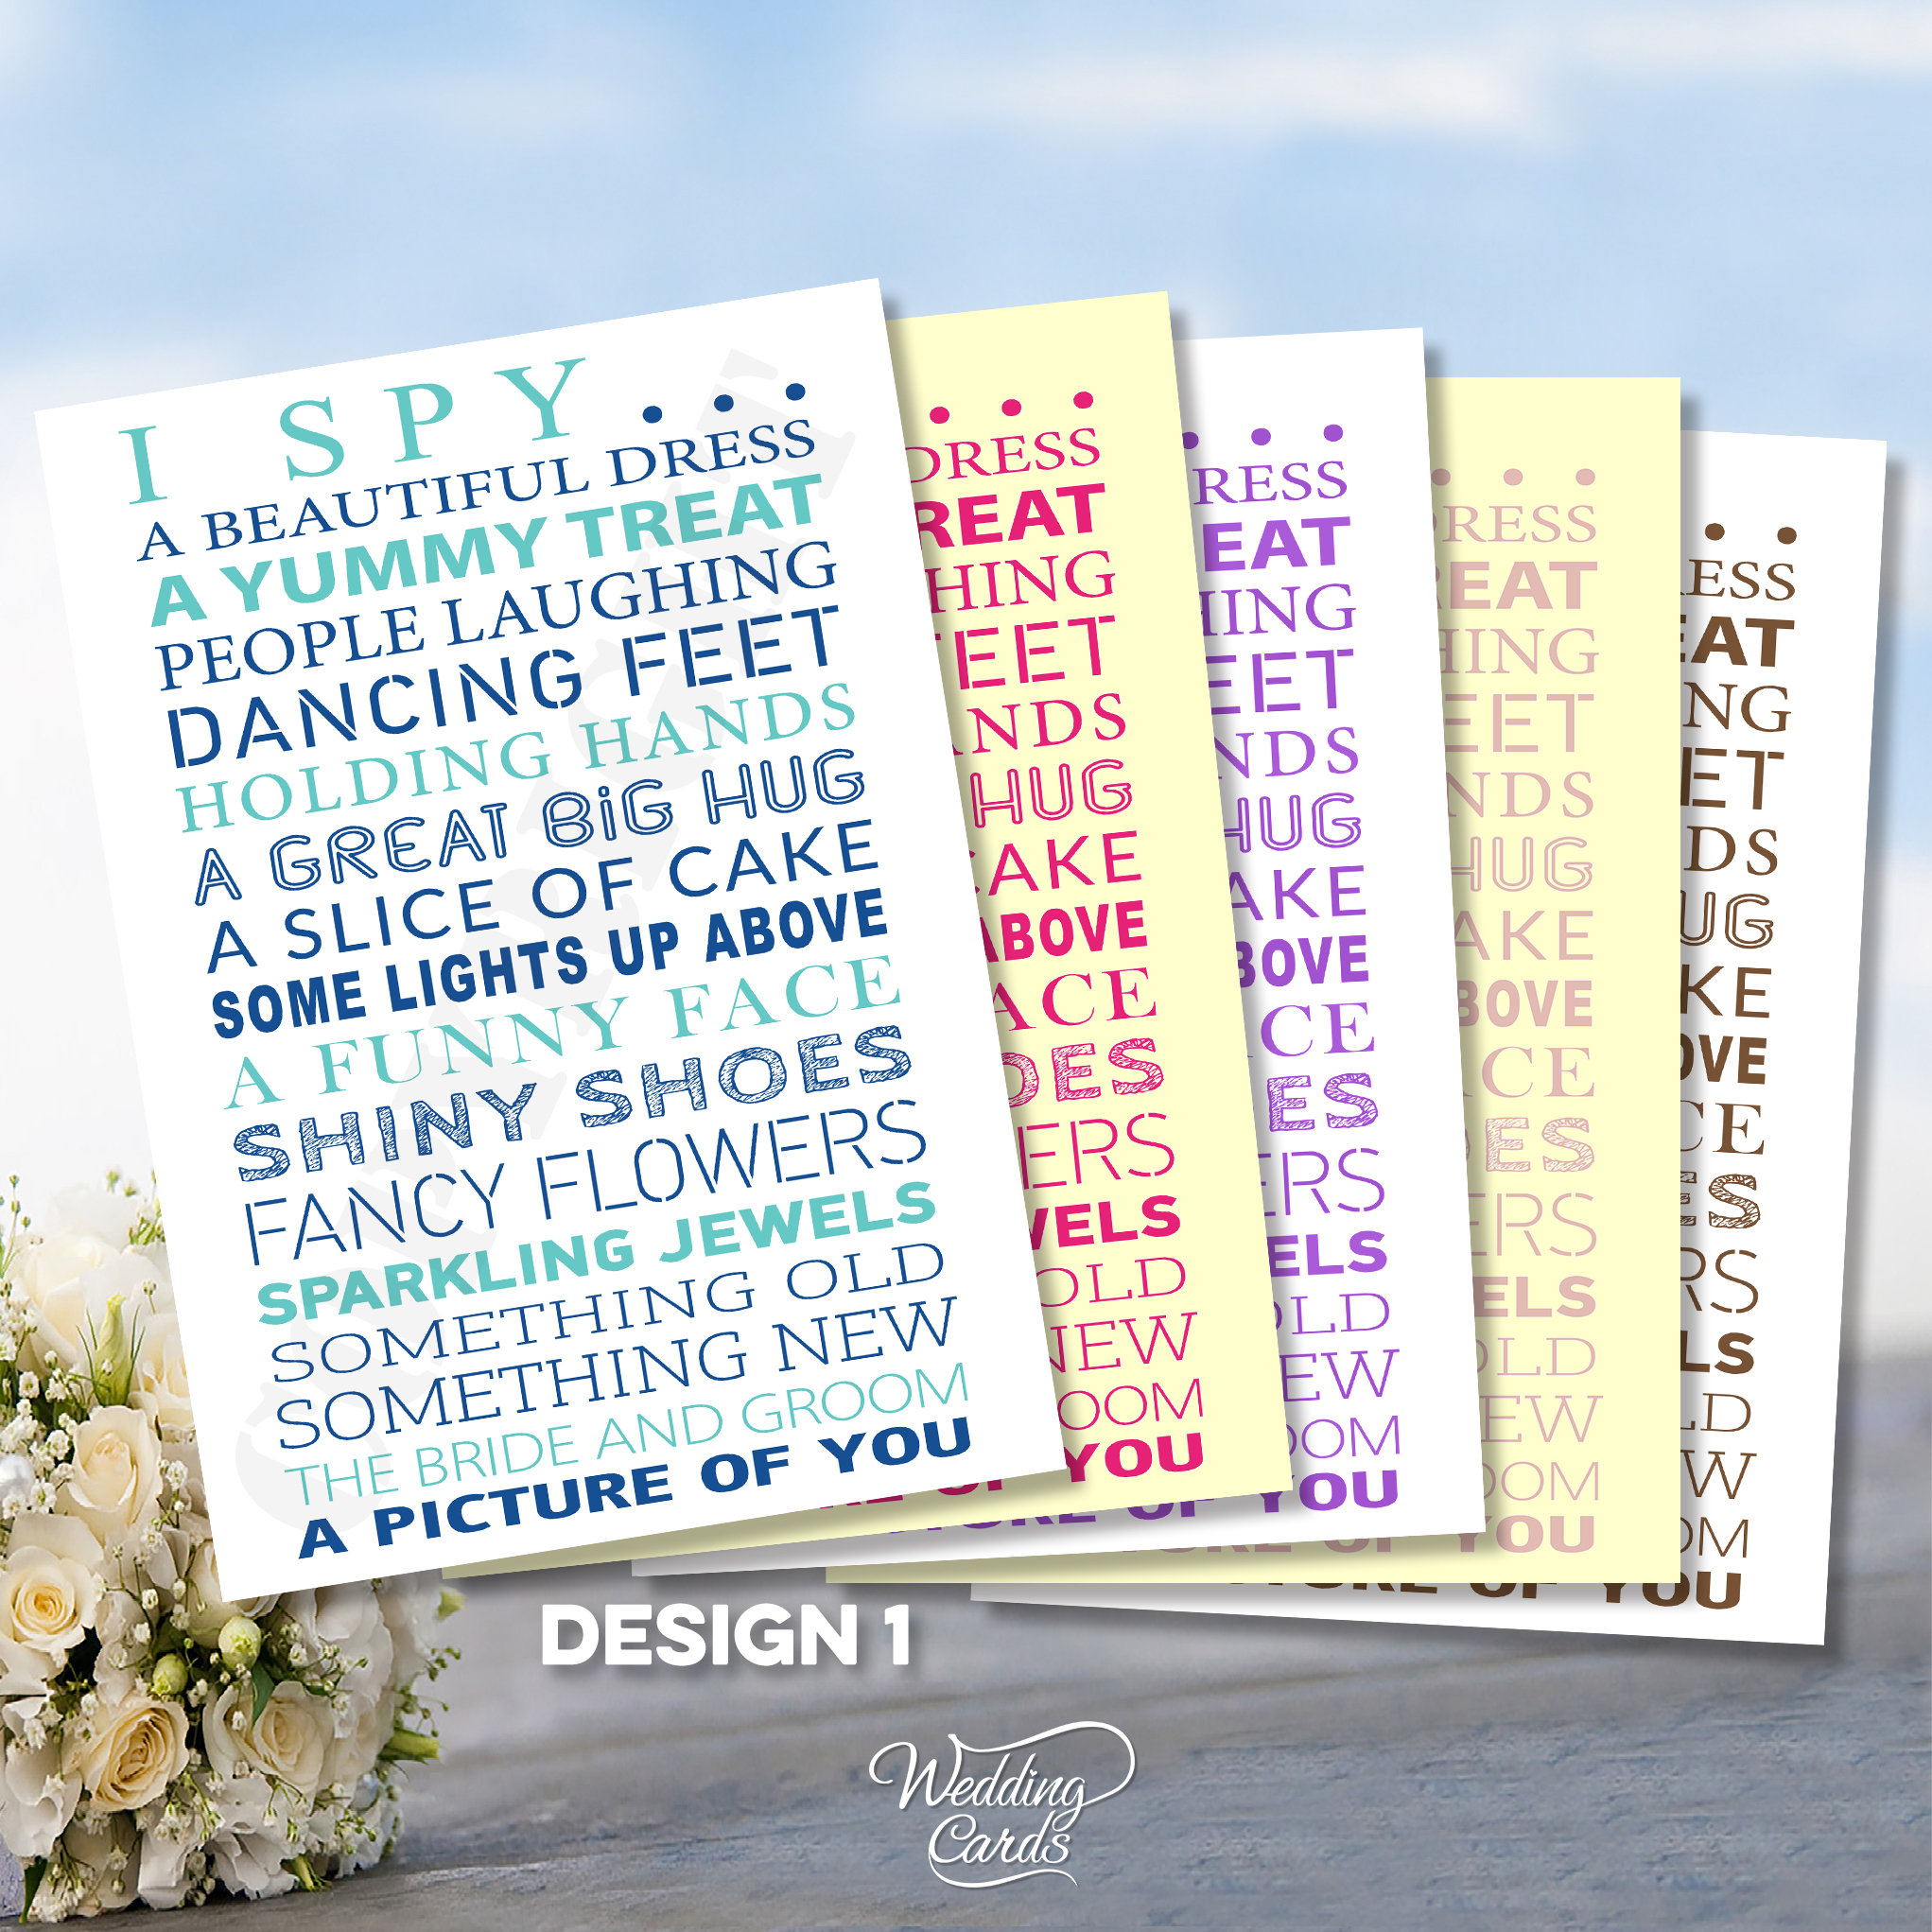 I Spy with my little eye Challenge cards